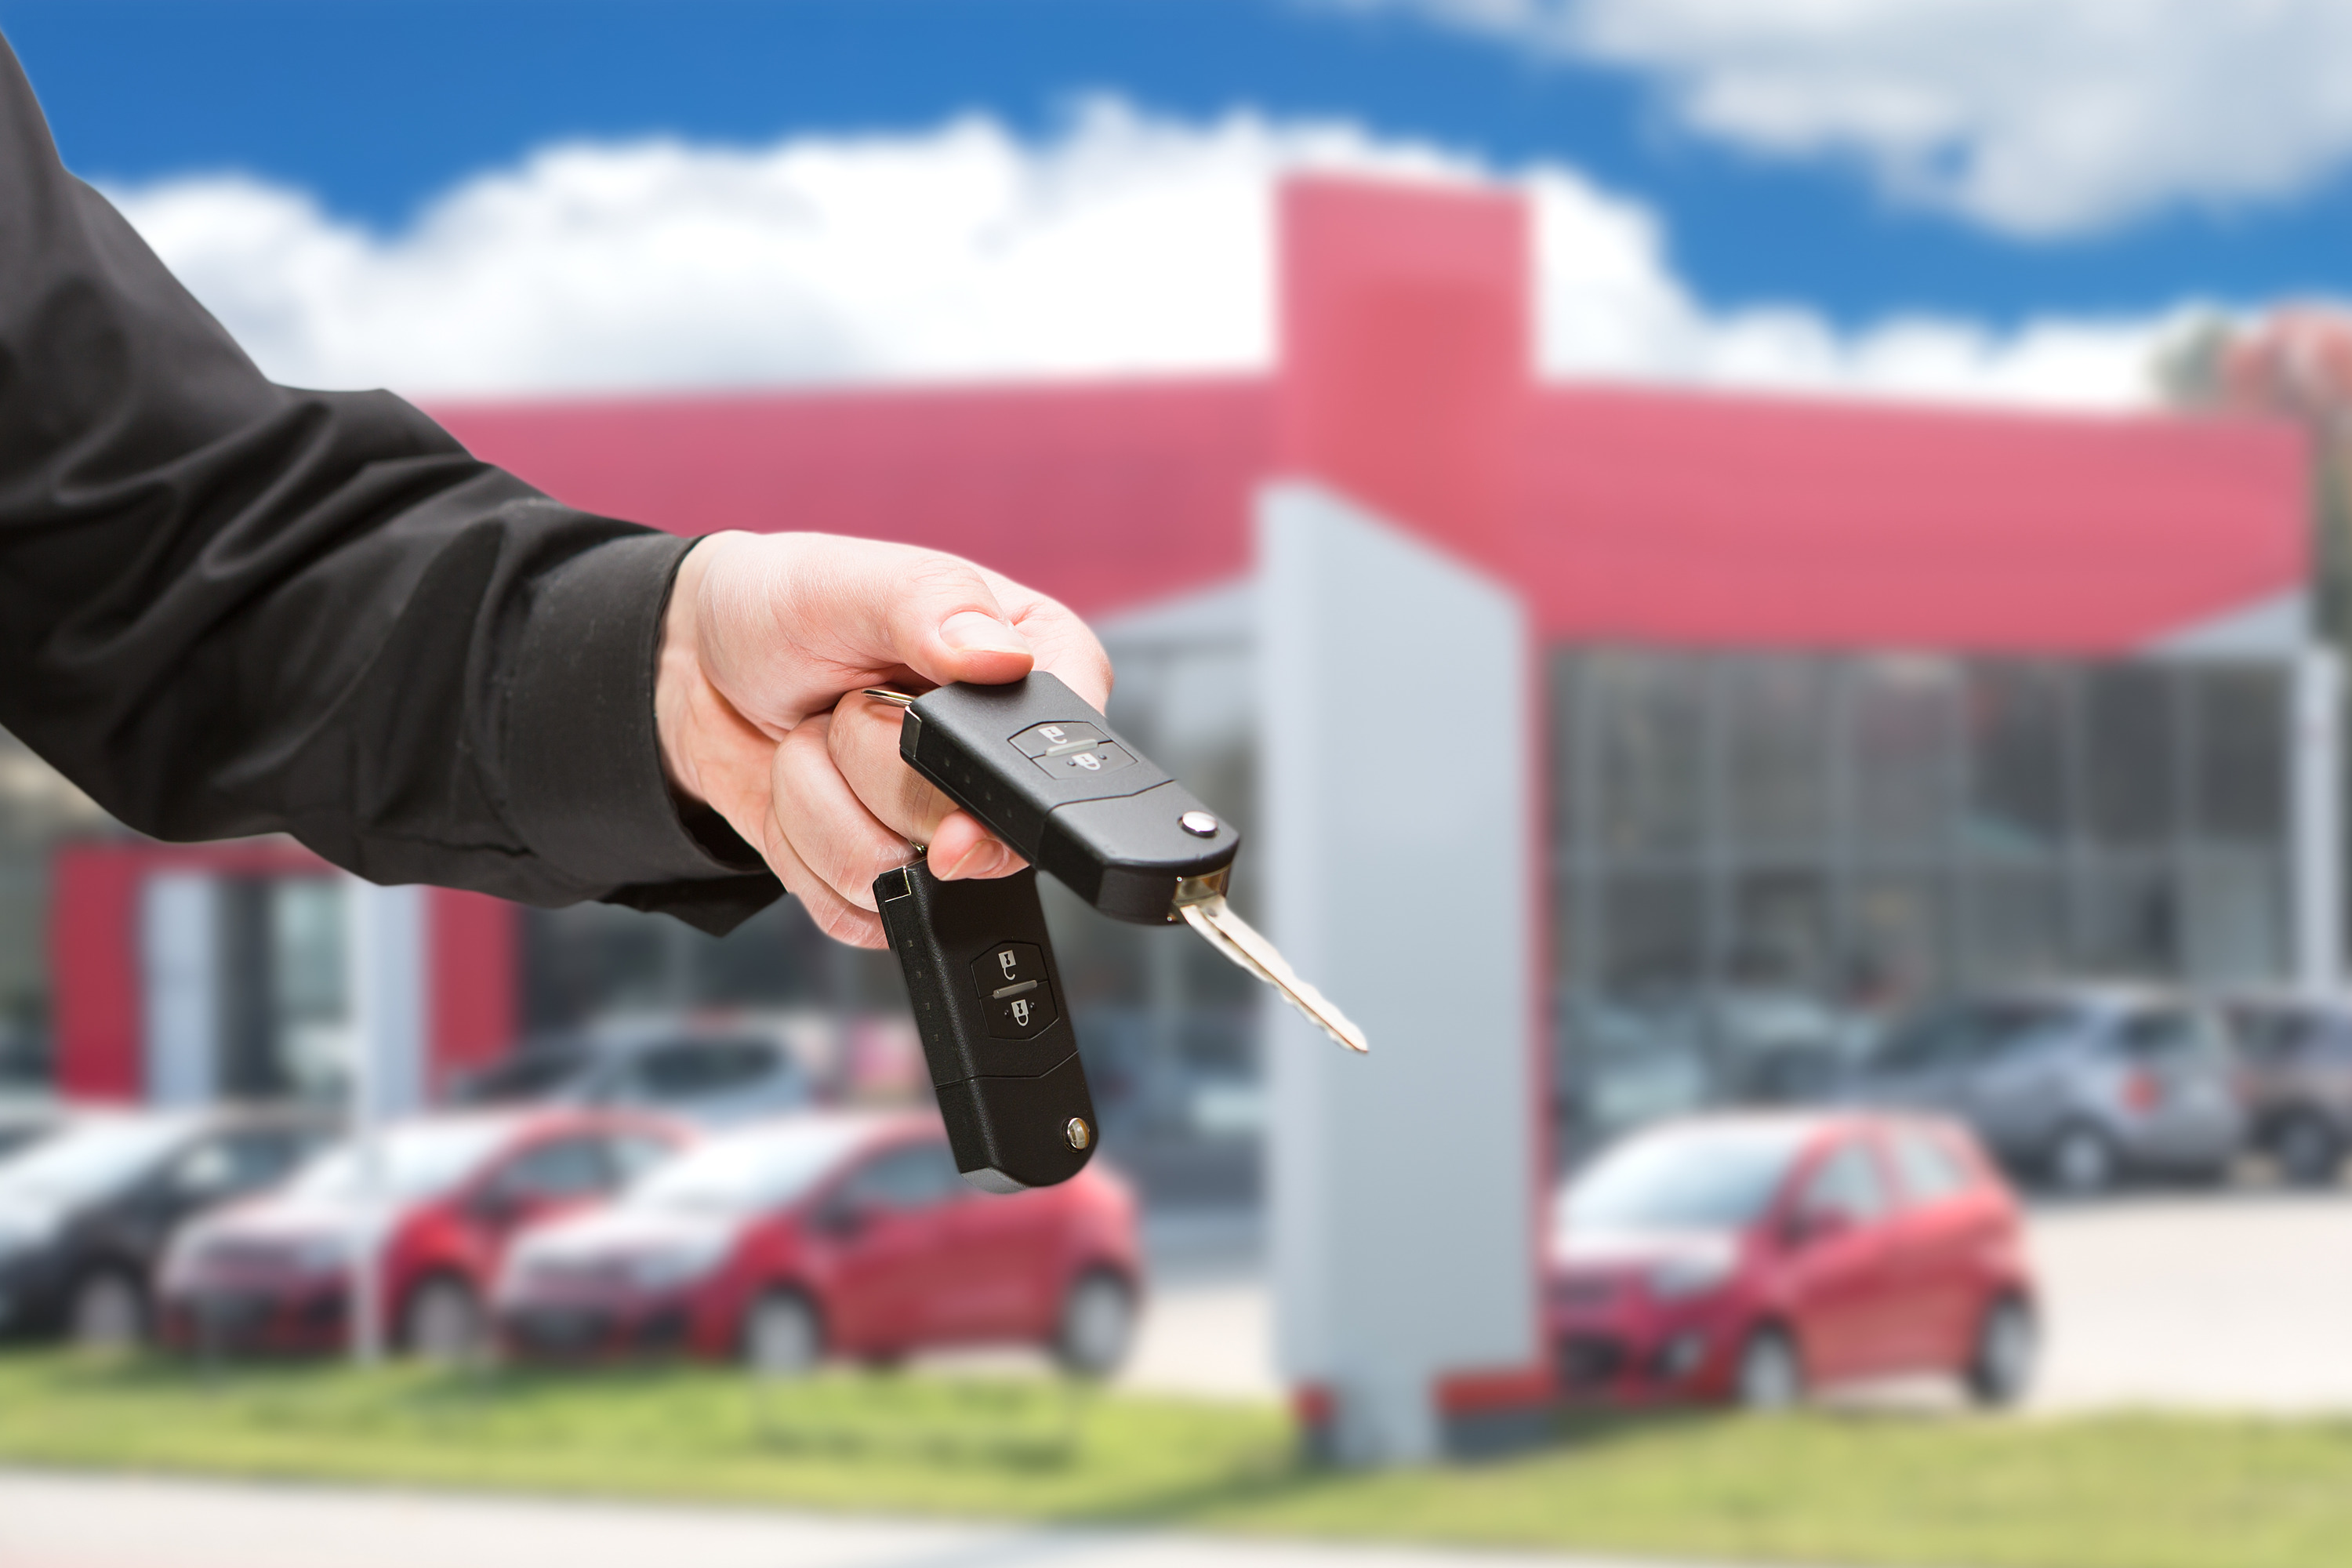 Qualify for Auto Loans after College in Tacoma at S&S Best Auto Sales